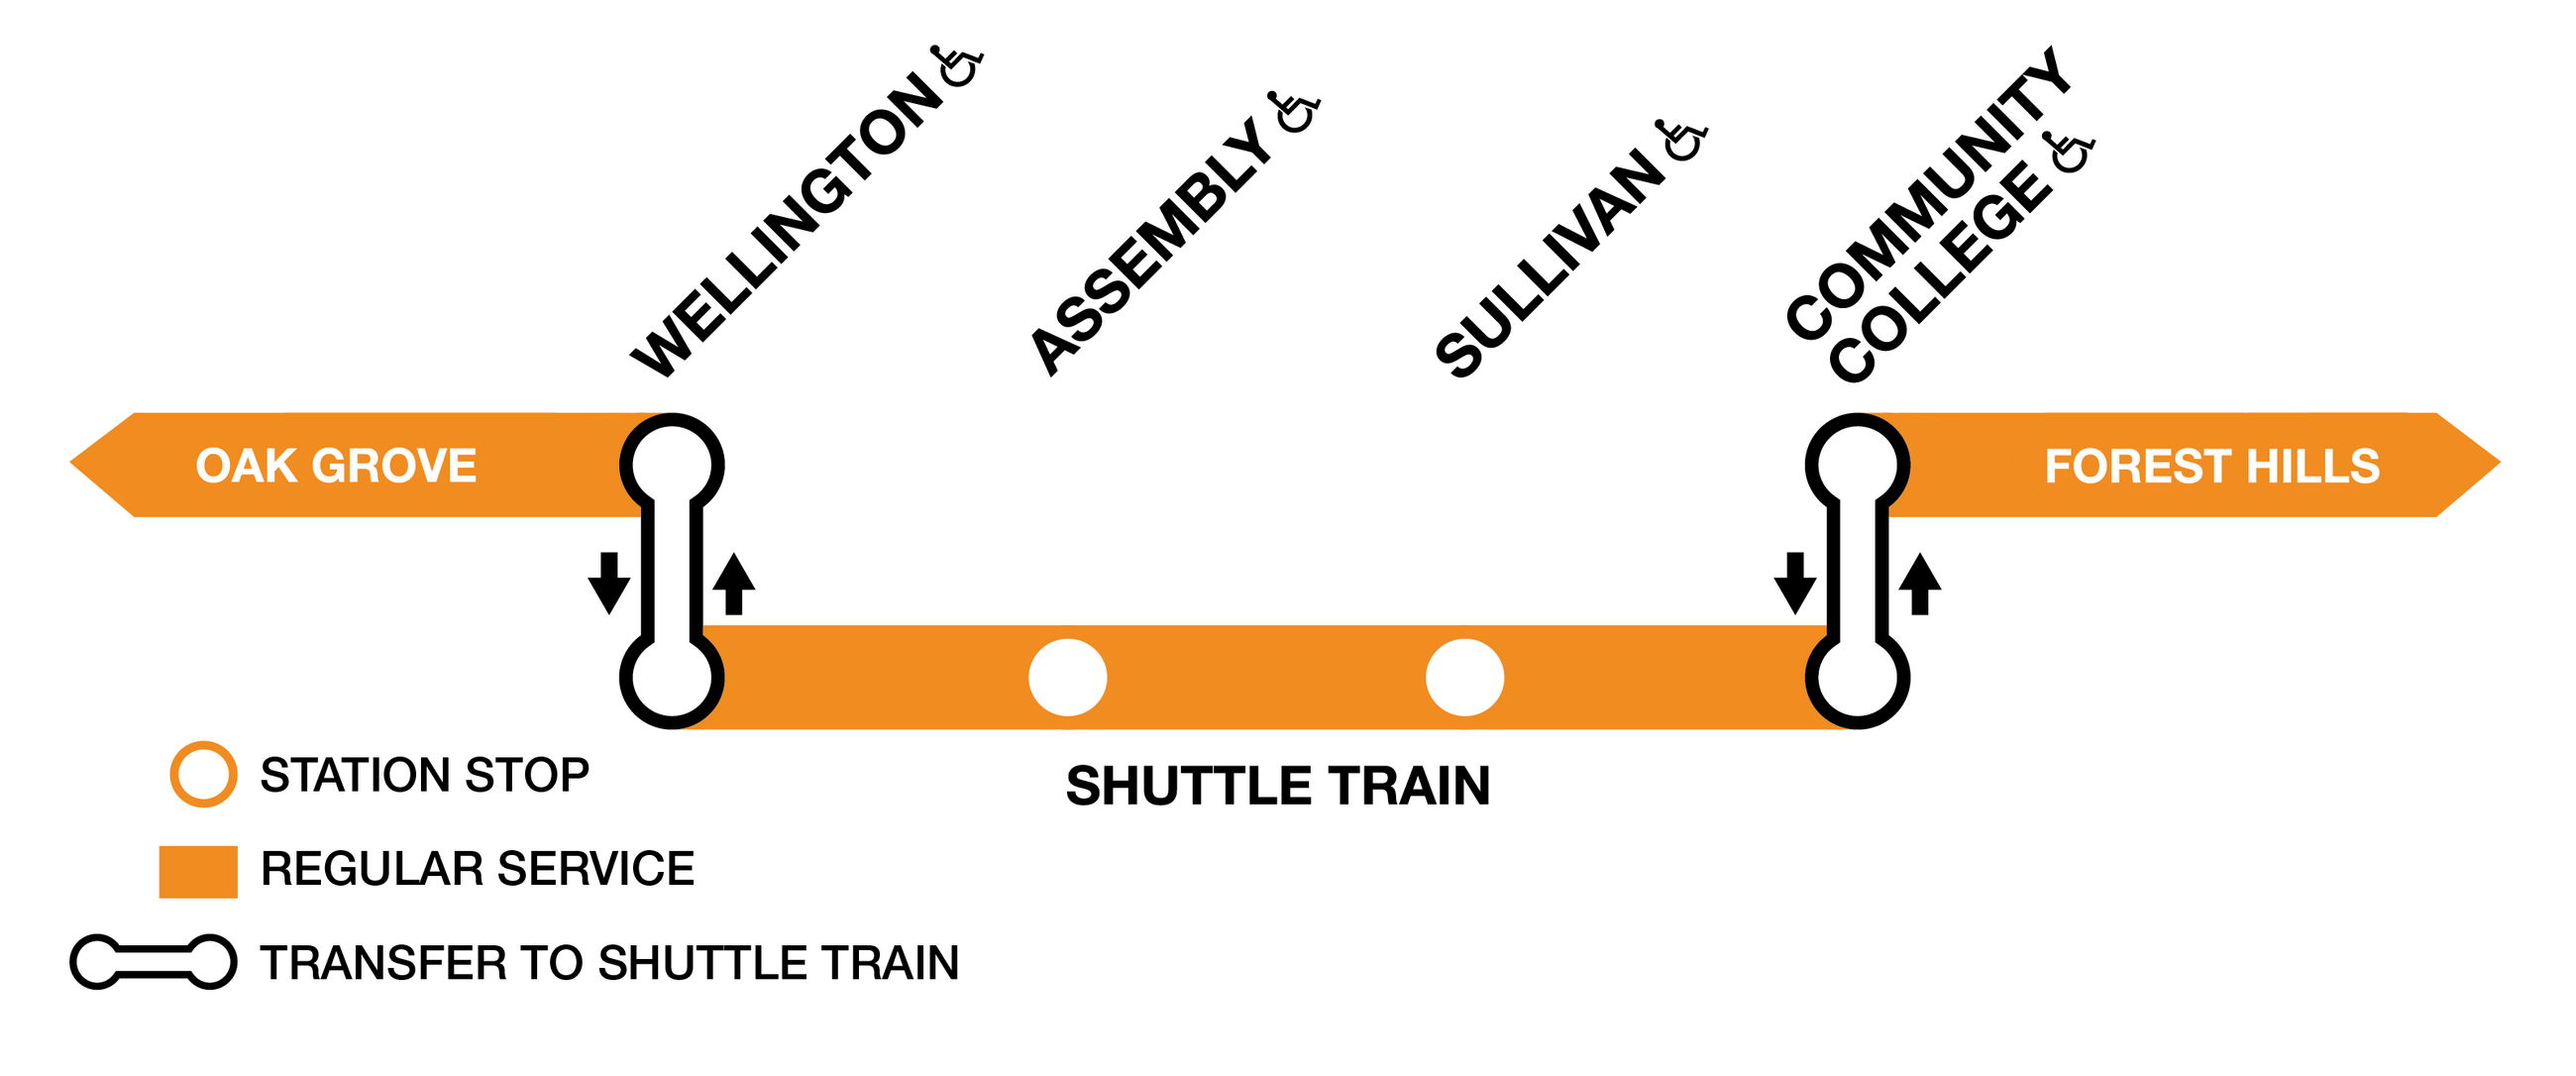 Orange Line diagram showing regular train service between Oak Grove to Wellington, a shuttle train running back and forth between Wellington and Community College, and regular train service between Community College and Forest Hills.